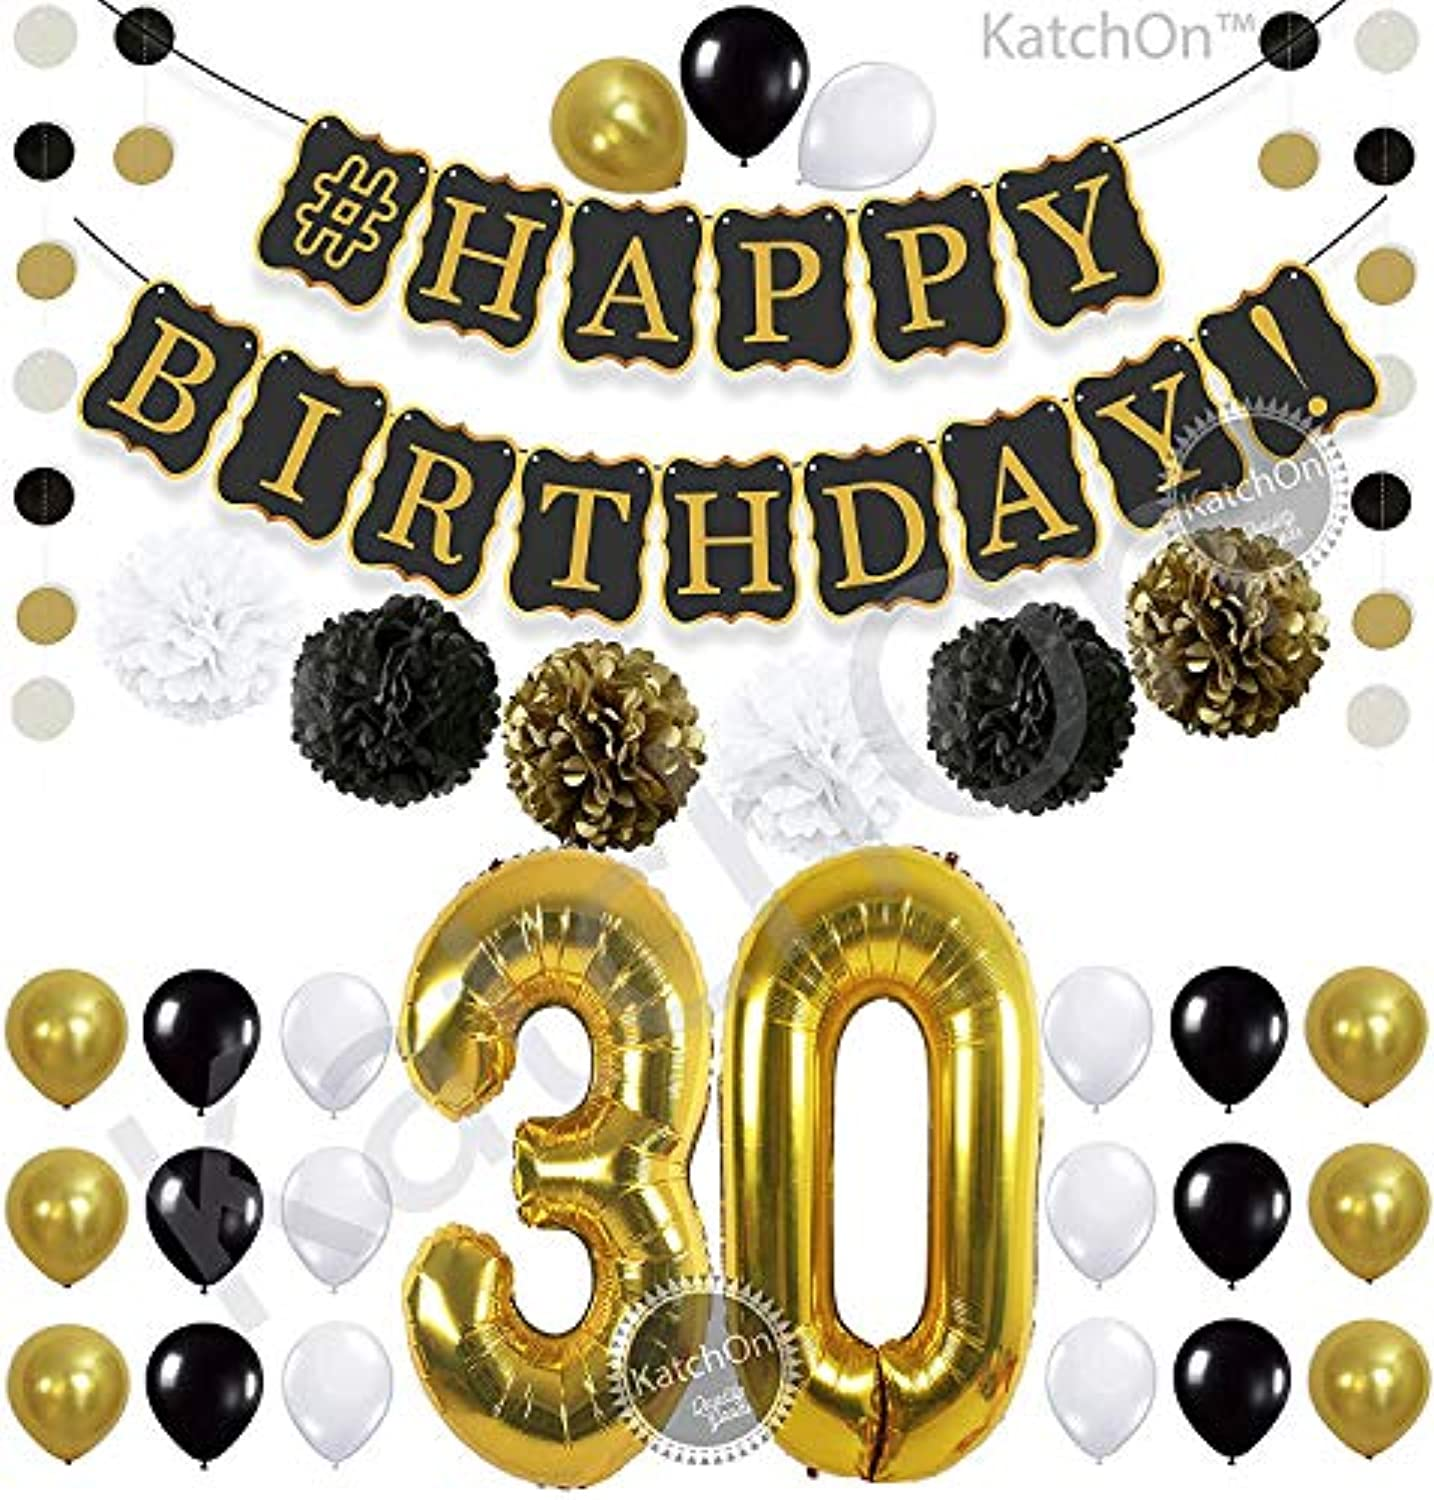 Black 30th Birthday Decorations Party KIT - Black Gold and White Paper Pompoms| Latex Balloons | Gold Number 30 Ballon | Circle Garland | 30th Birthday Balloons | 30 Years Old Birthday Party Supplies